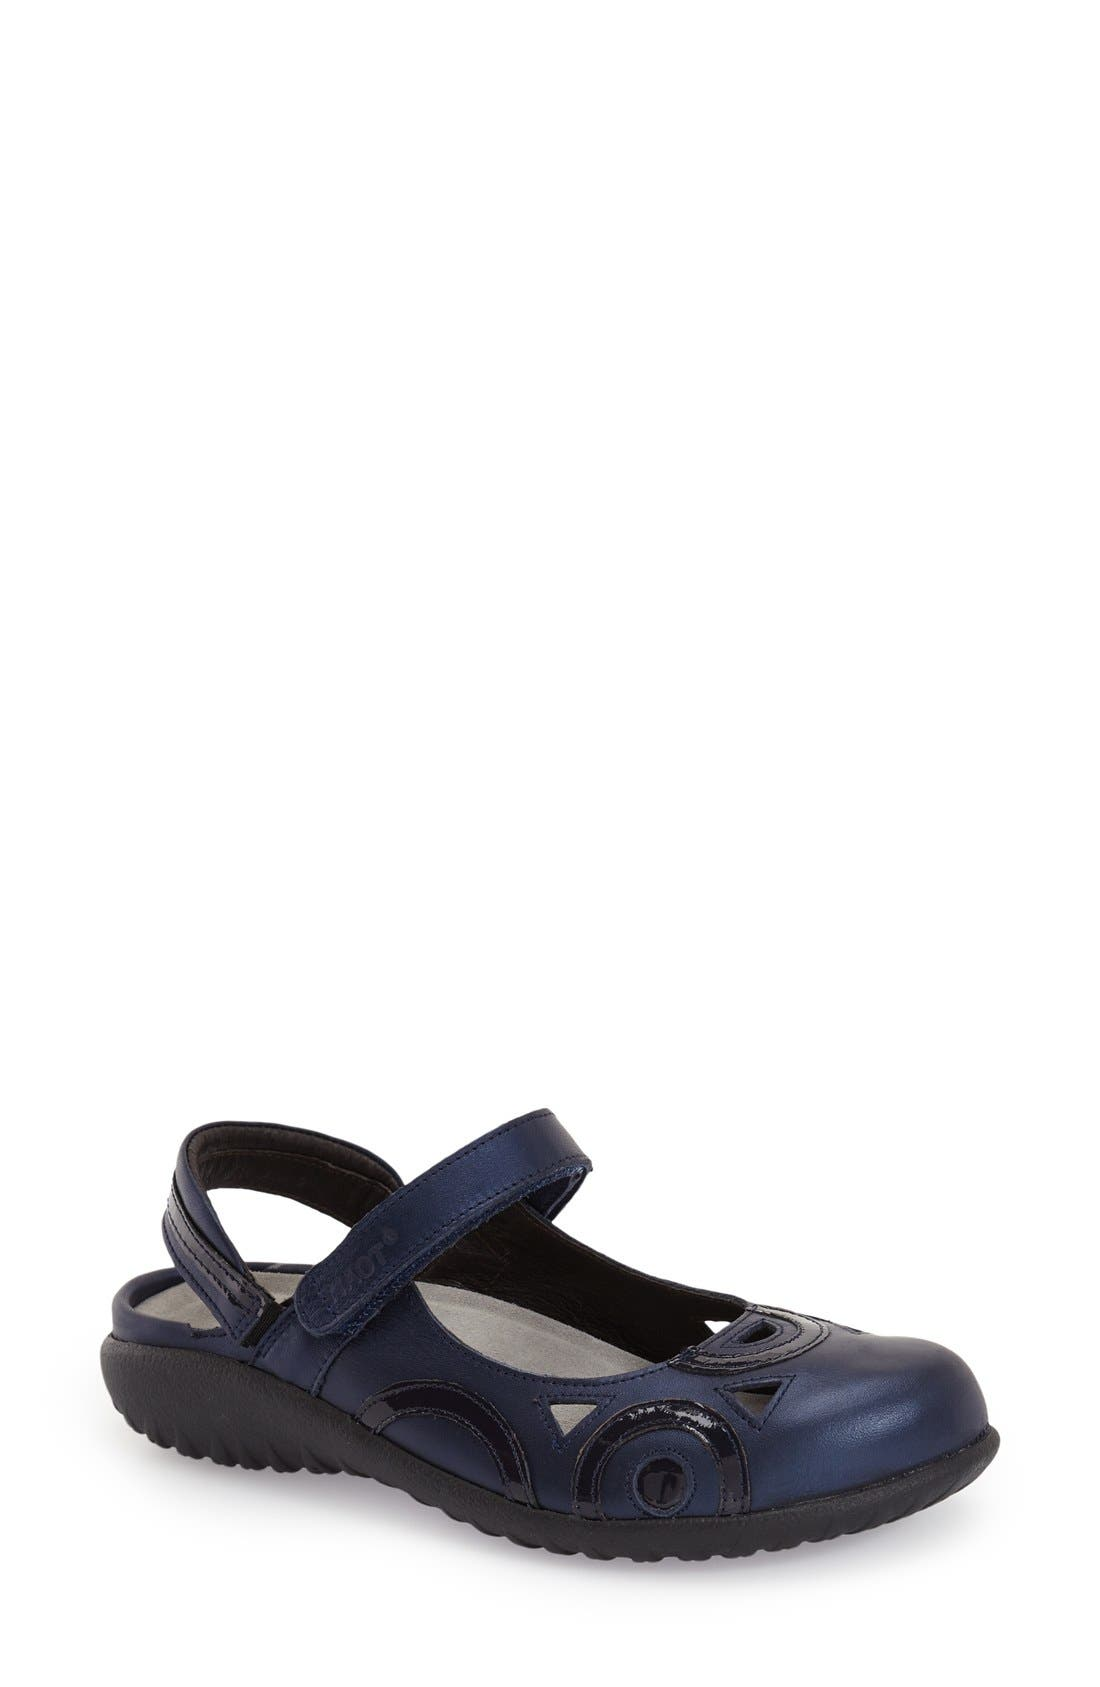 'Rongo' Slip-On,                         Main,                         color, Navy Patent Leather Combo